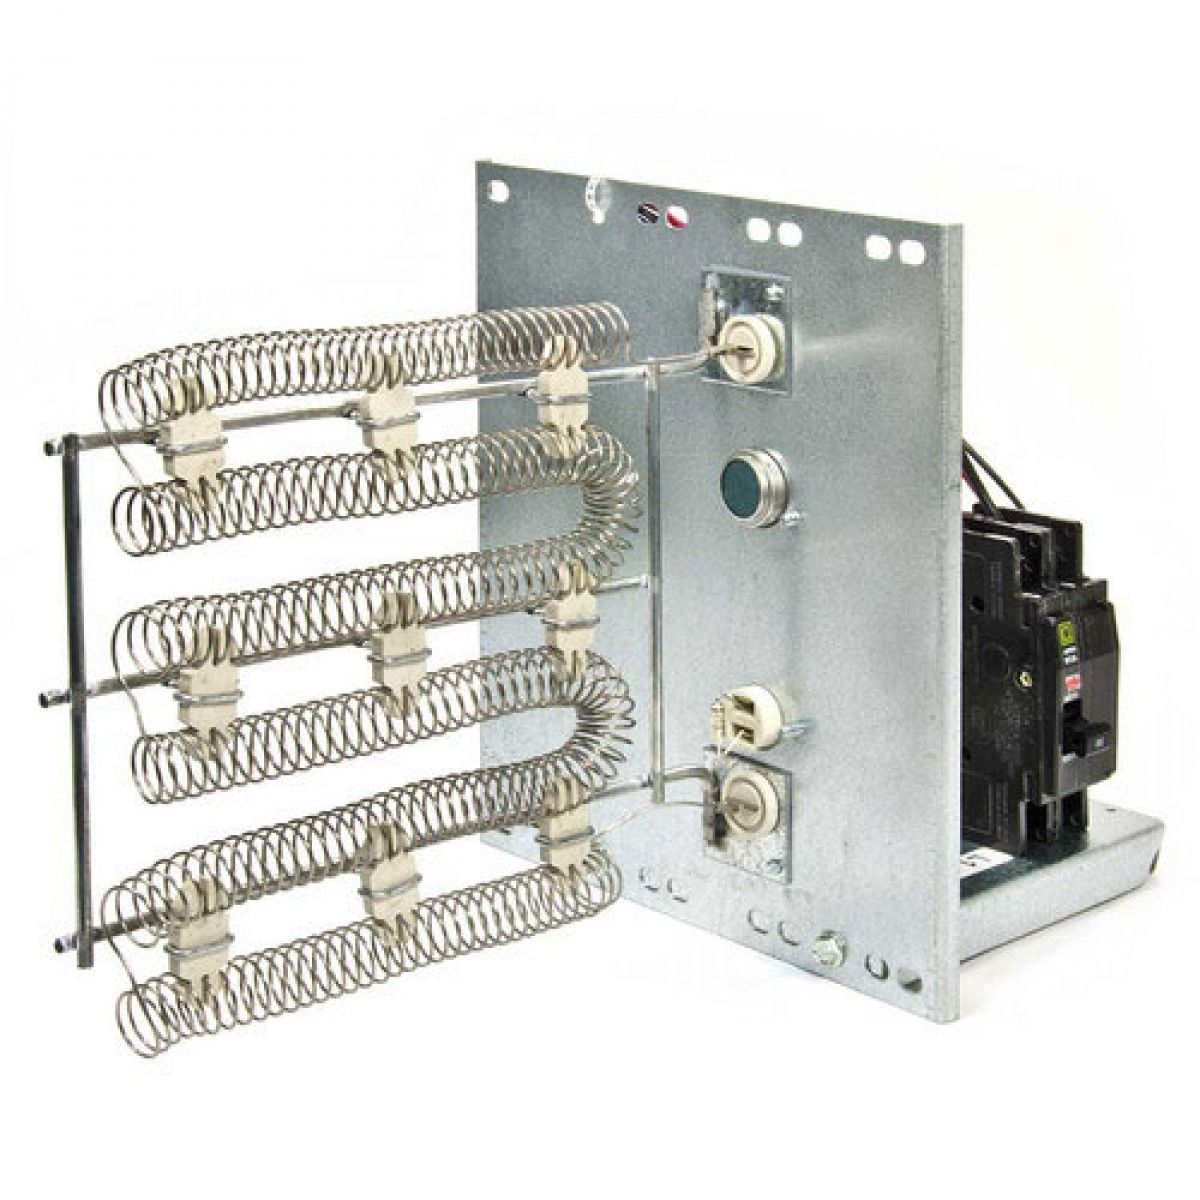 hkr 05c 4_3_1 goodman 15kw heating element with breaker hka 15c in heaters goodman hkr 15c wiring diagram at bayanpartner.co